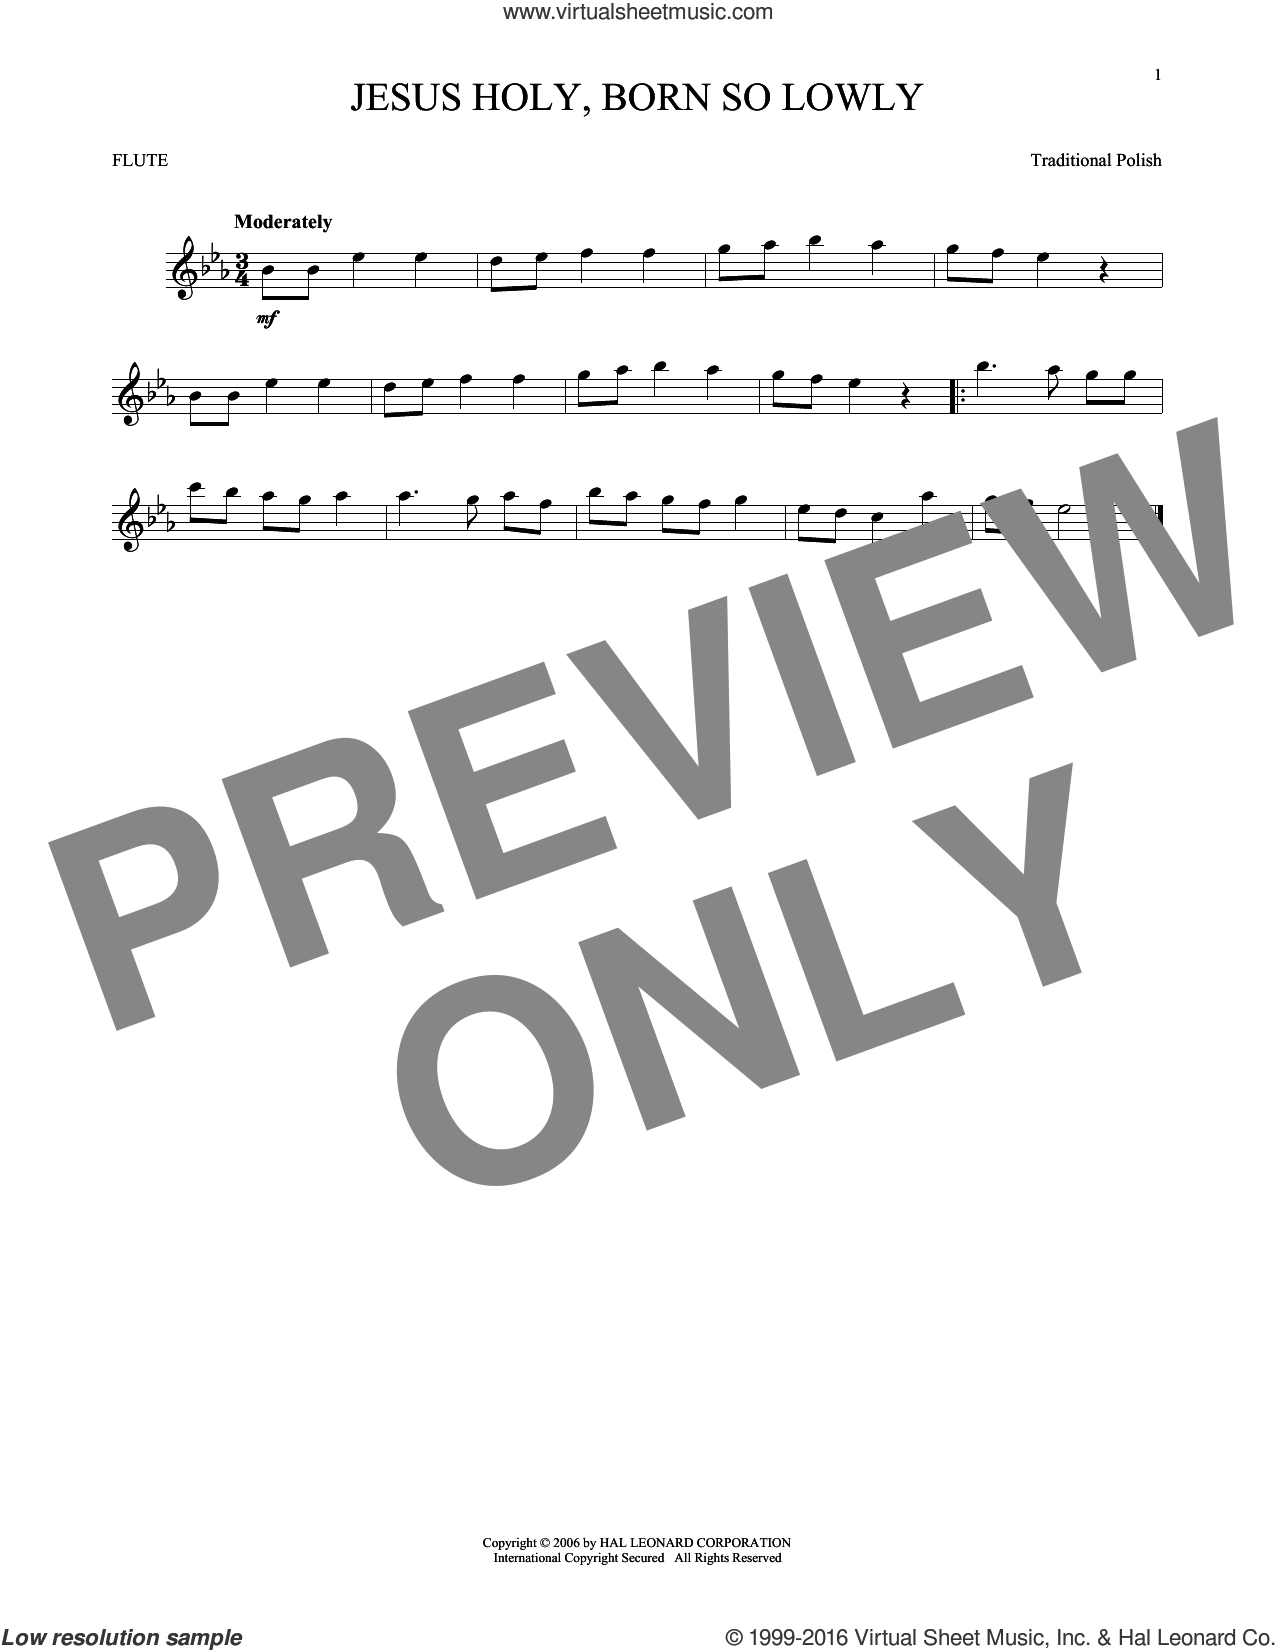 Jesus Holy, Born So Lowly sheet music for flute solo, intermediate skill level